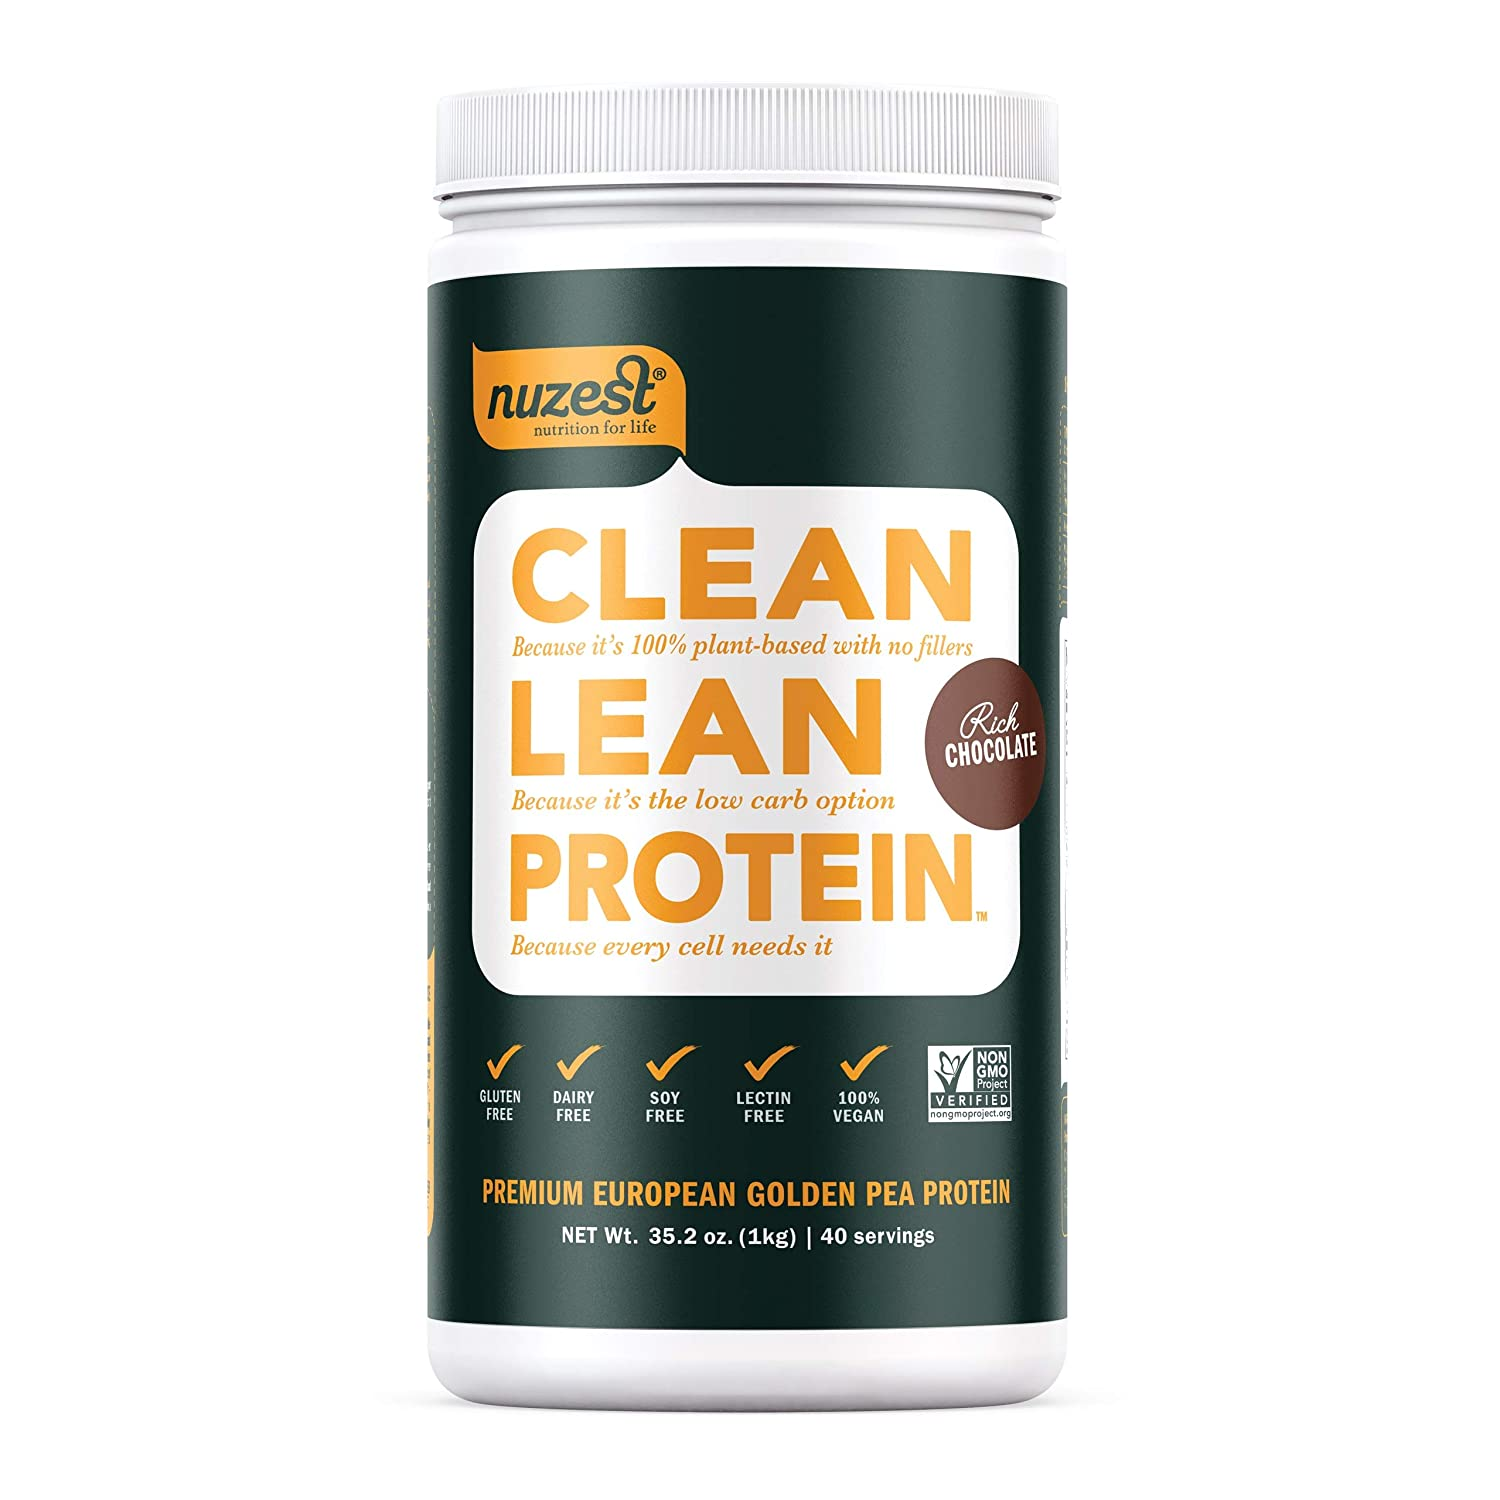 Nuzest Clean Lean Protein – Premium Vegan Protein Powder, Plant Protein Powder, European Golden Pea Protein, Dairy Free, Gluten Free, GMO Free, Naturally Sweetened, Rich Chocolate, 40 Servings, 2.2 lb